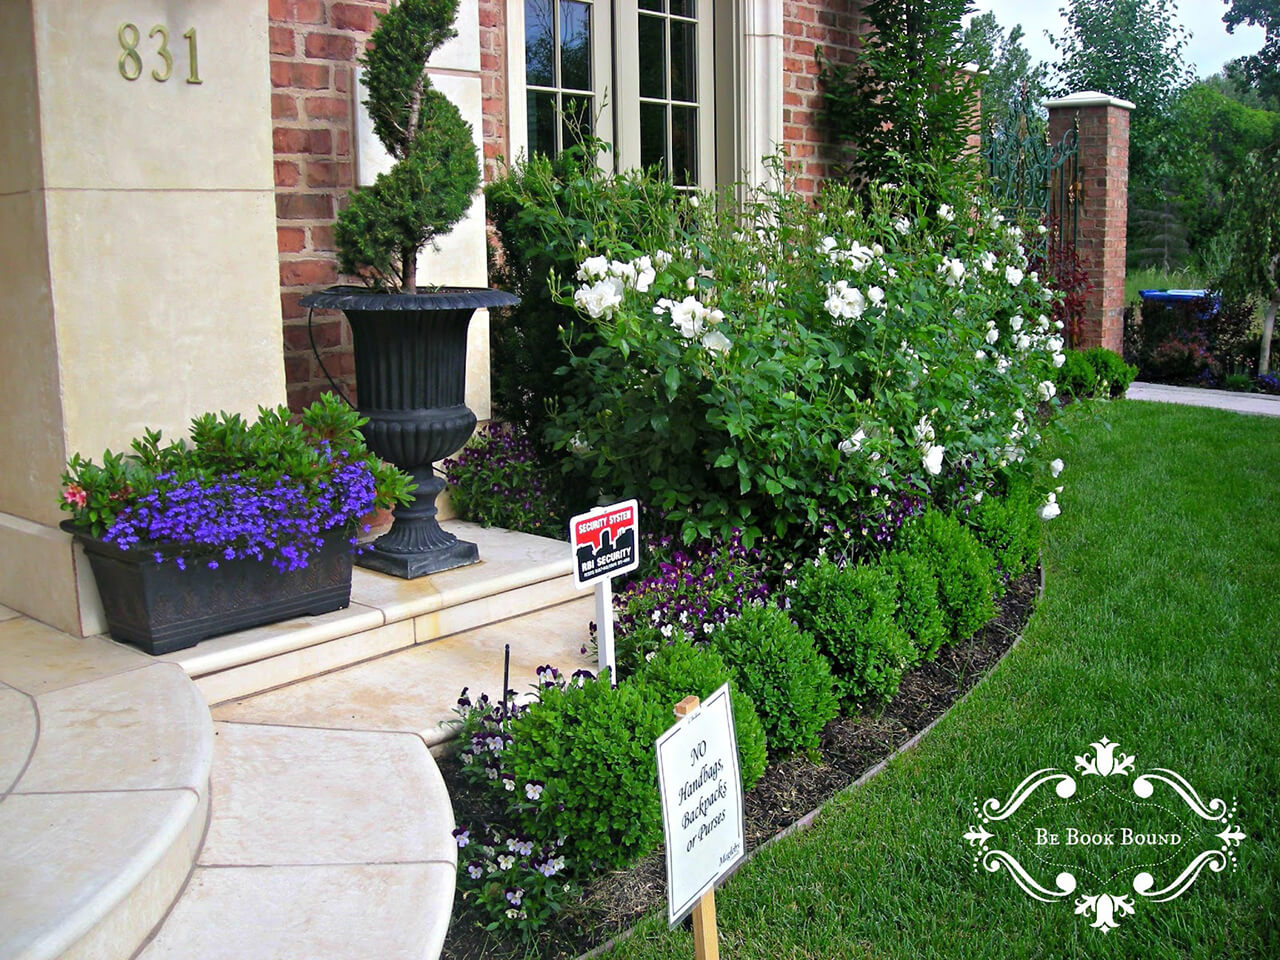 50 Best Front Yard Landscaping Ideas and Garden Designs ... on Front Yard And Backyard Landscaping Ideas id=95500